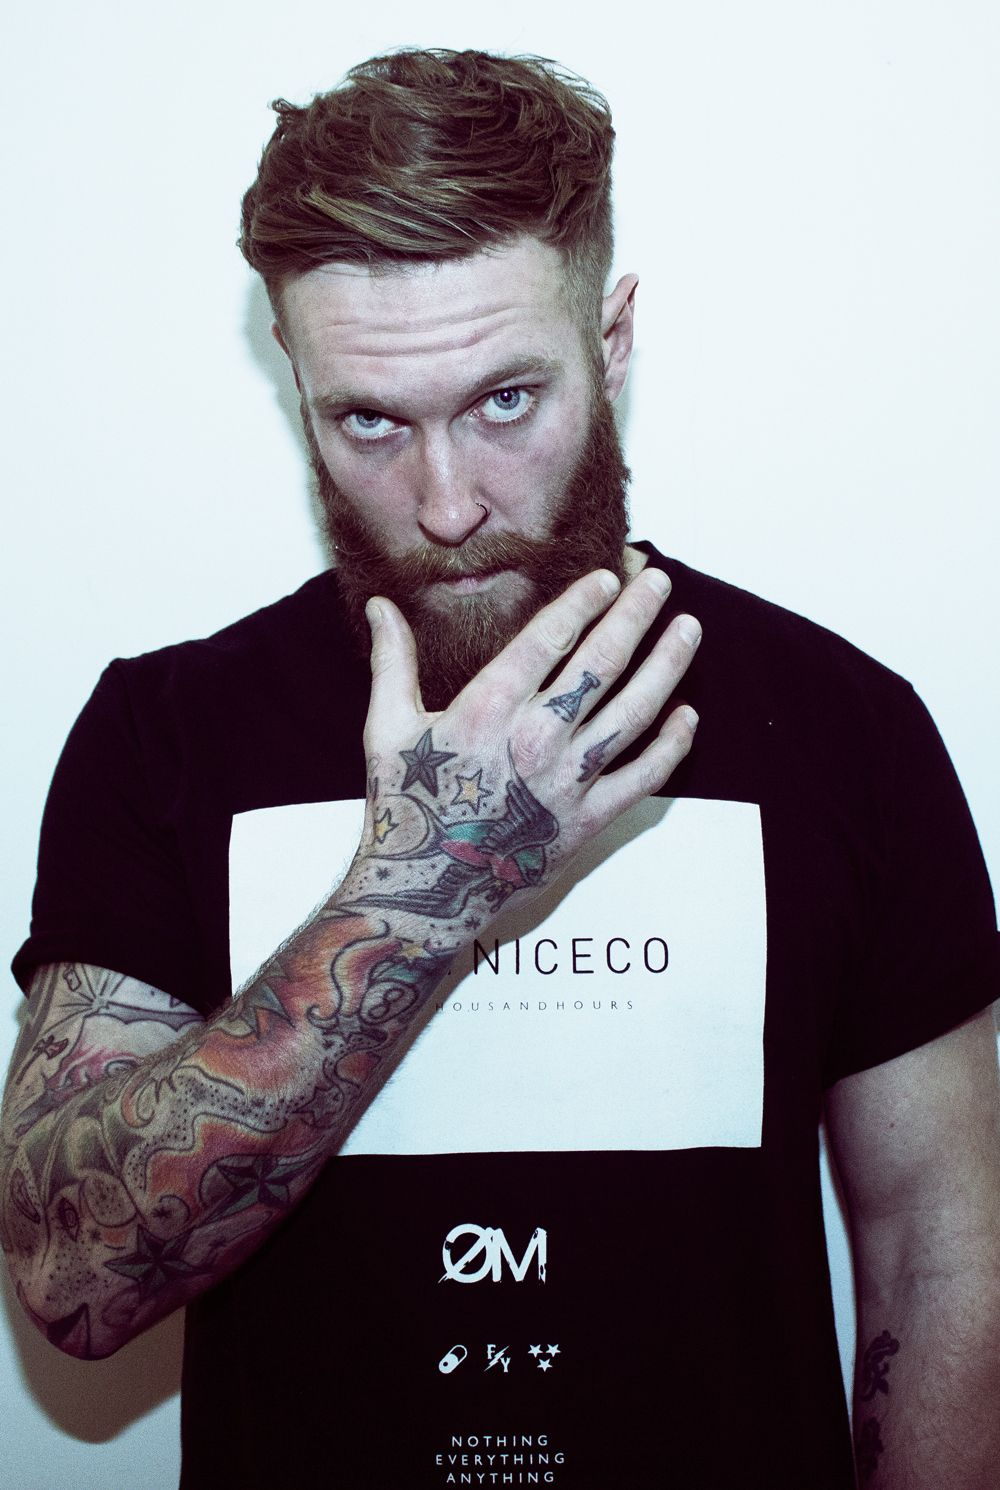 Haircuts for men las vegas pin by saushae bennett on guys  pinterest  beard haircut man